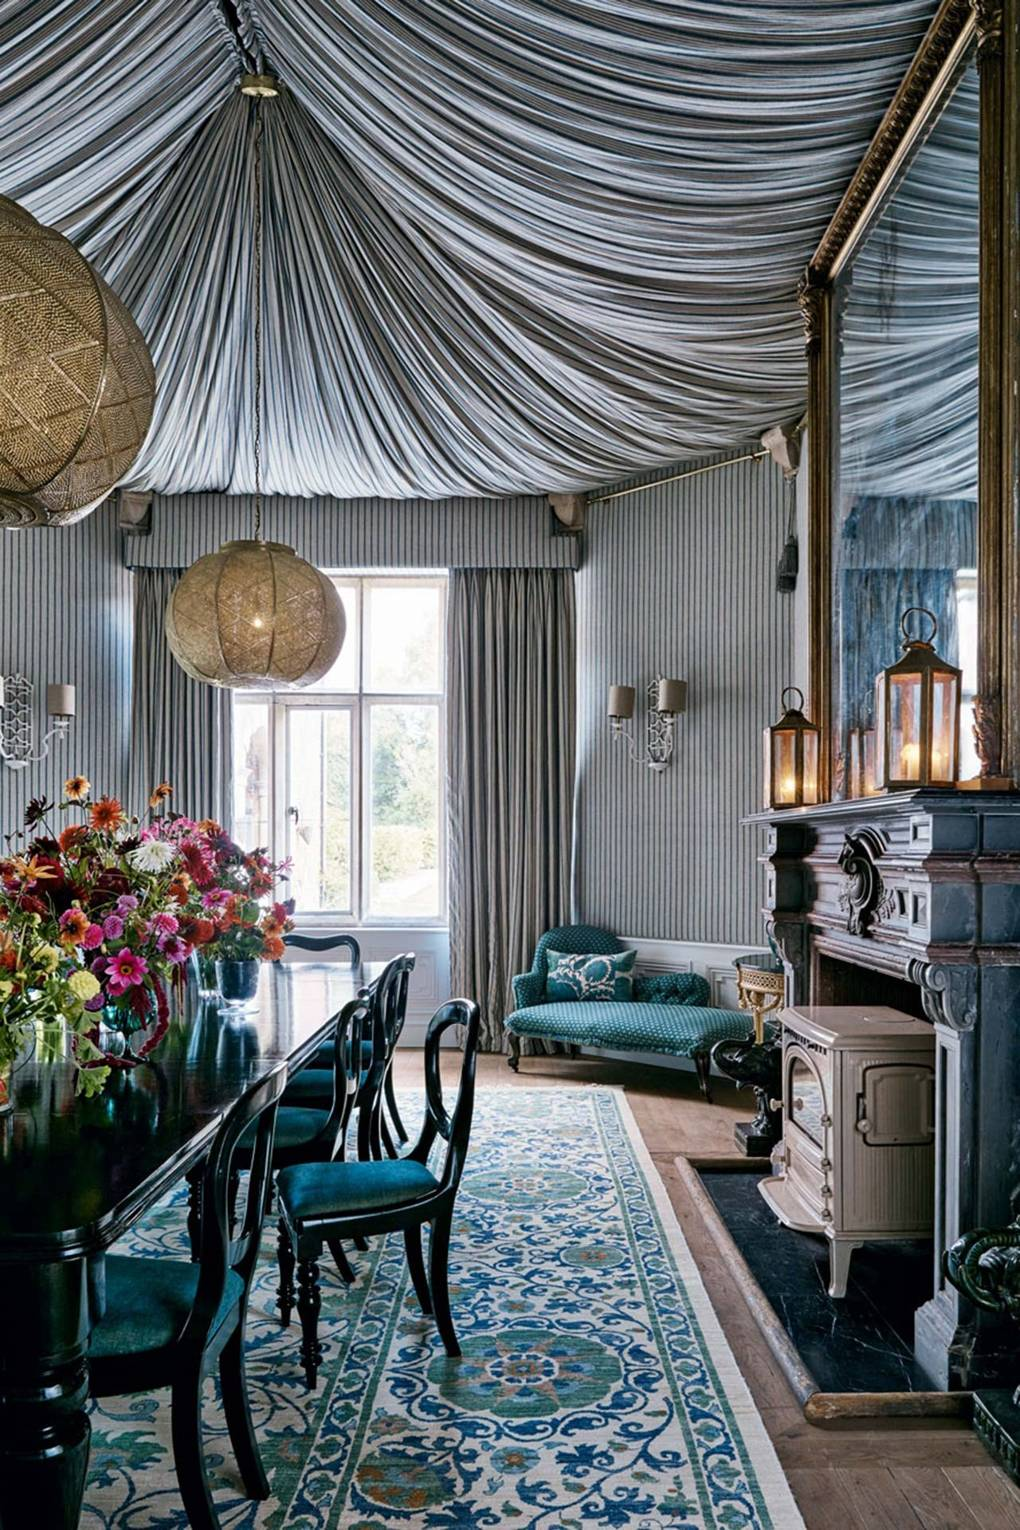 Stylish ceiling drapes